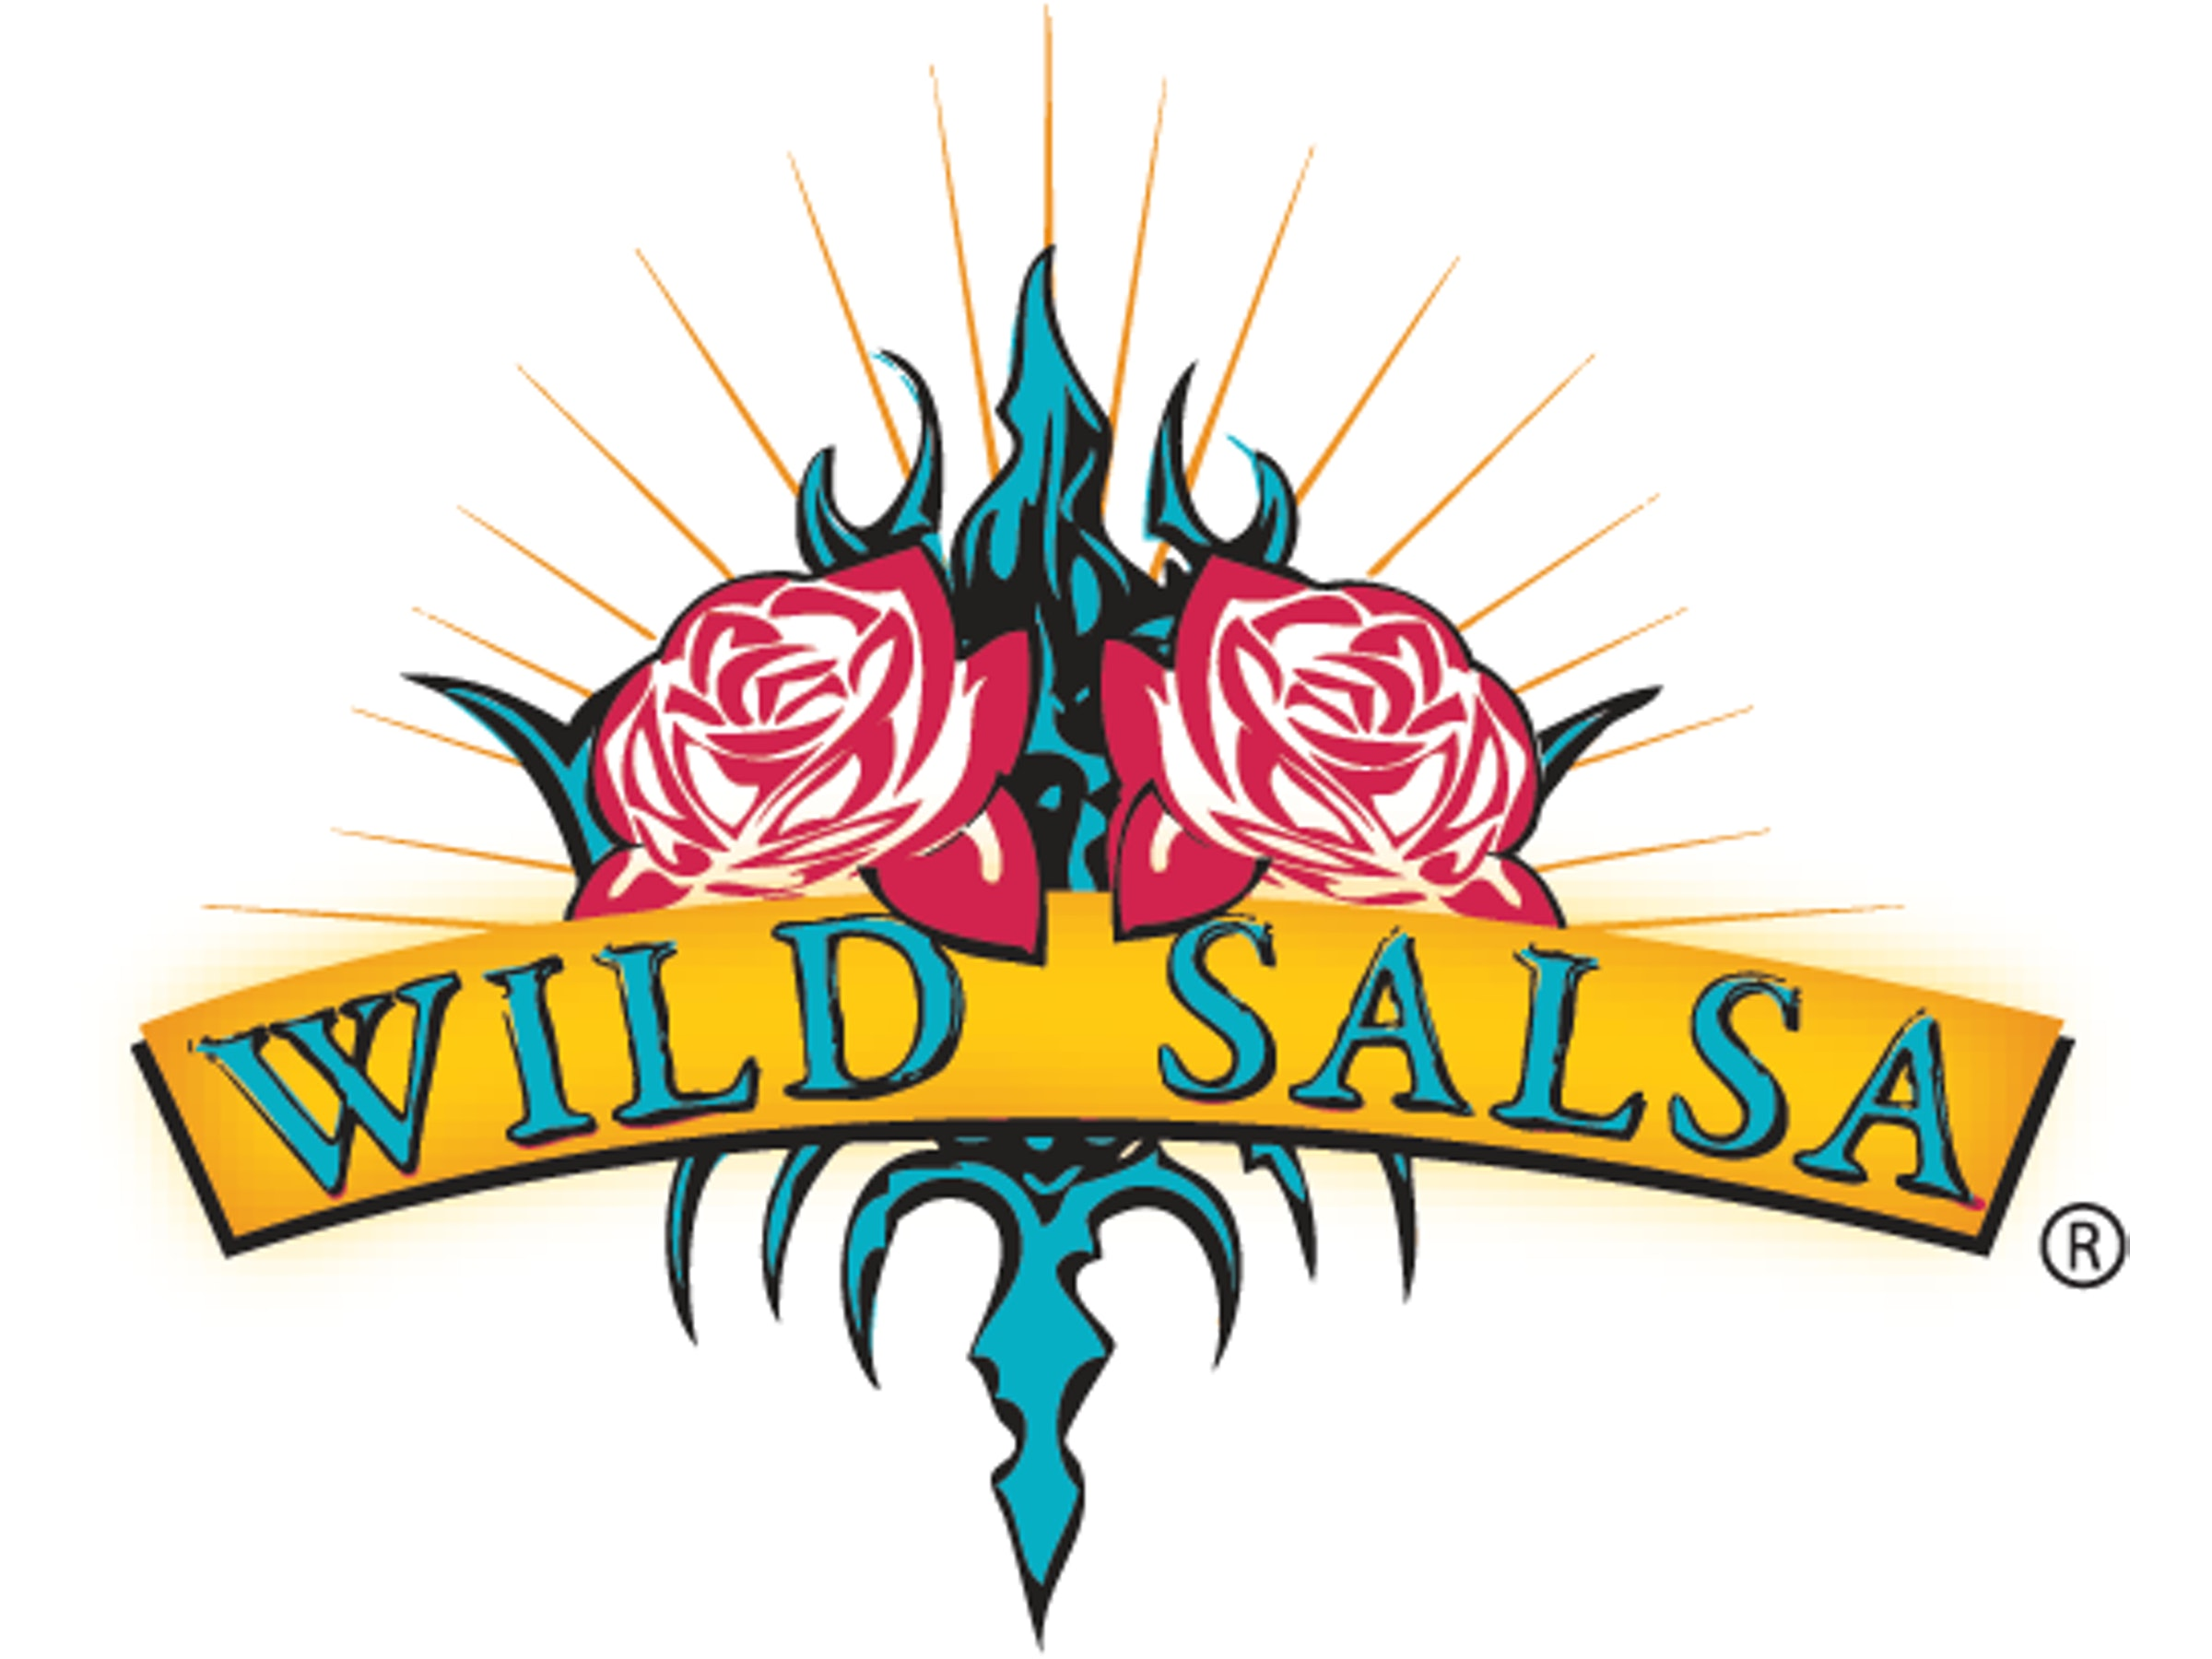 Wild Salsa in Beyond Dallas